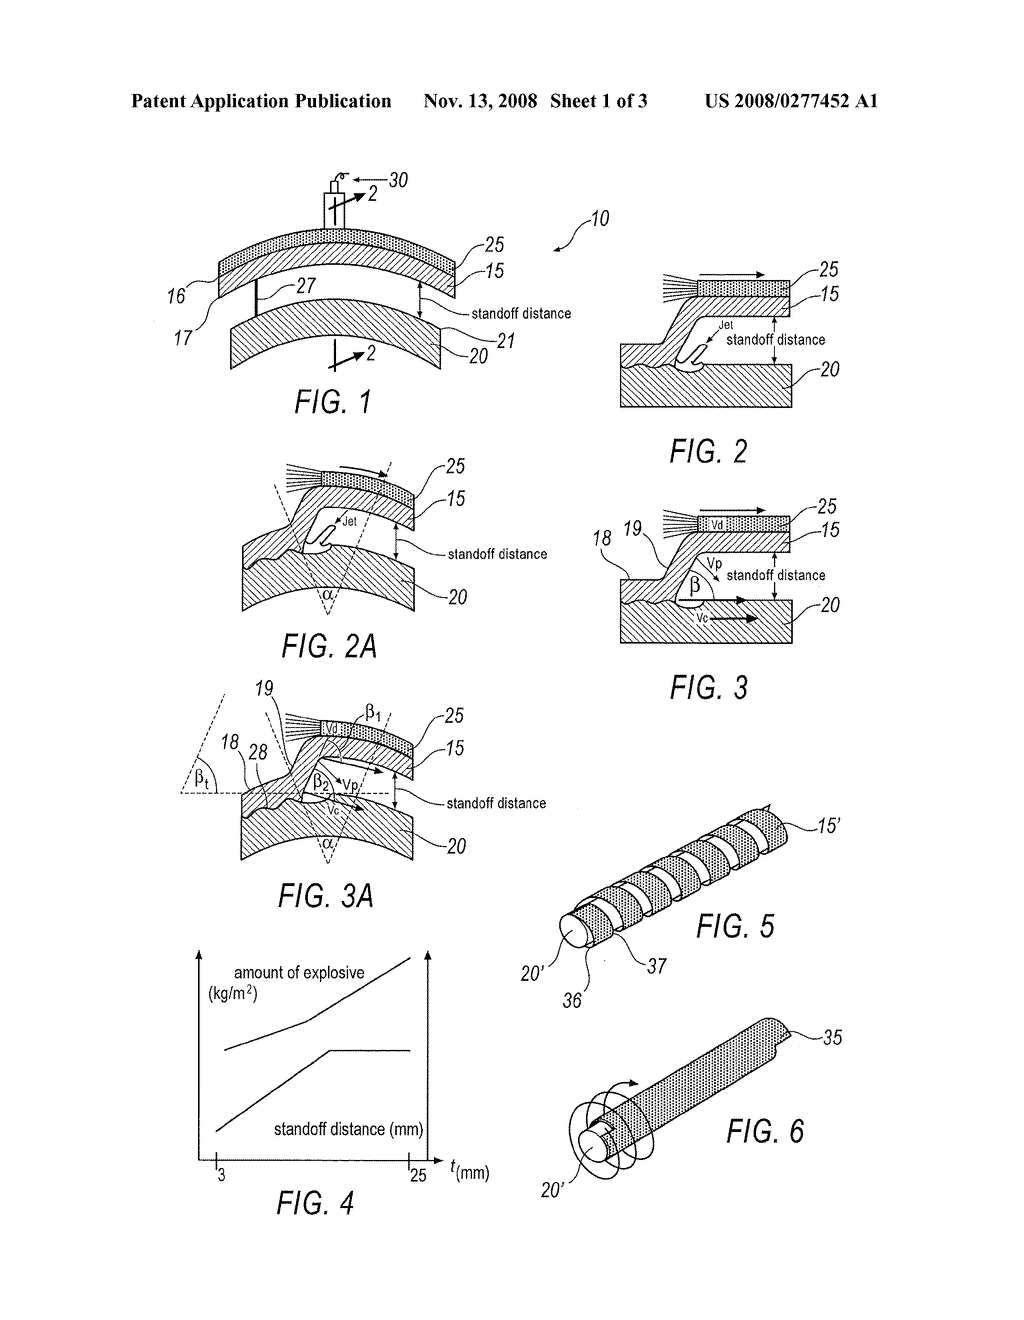 METHOD OF EXPLOSION WELDING TO CREATE AN EXPLOSION WELDED ARTICLE HAVING A  NON-PLANAR SURFACE - diagram, schematic, and image 02